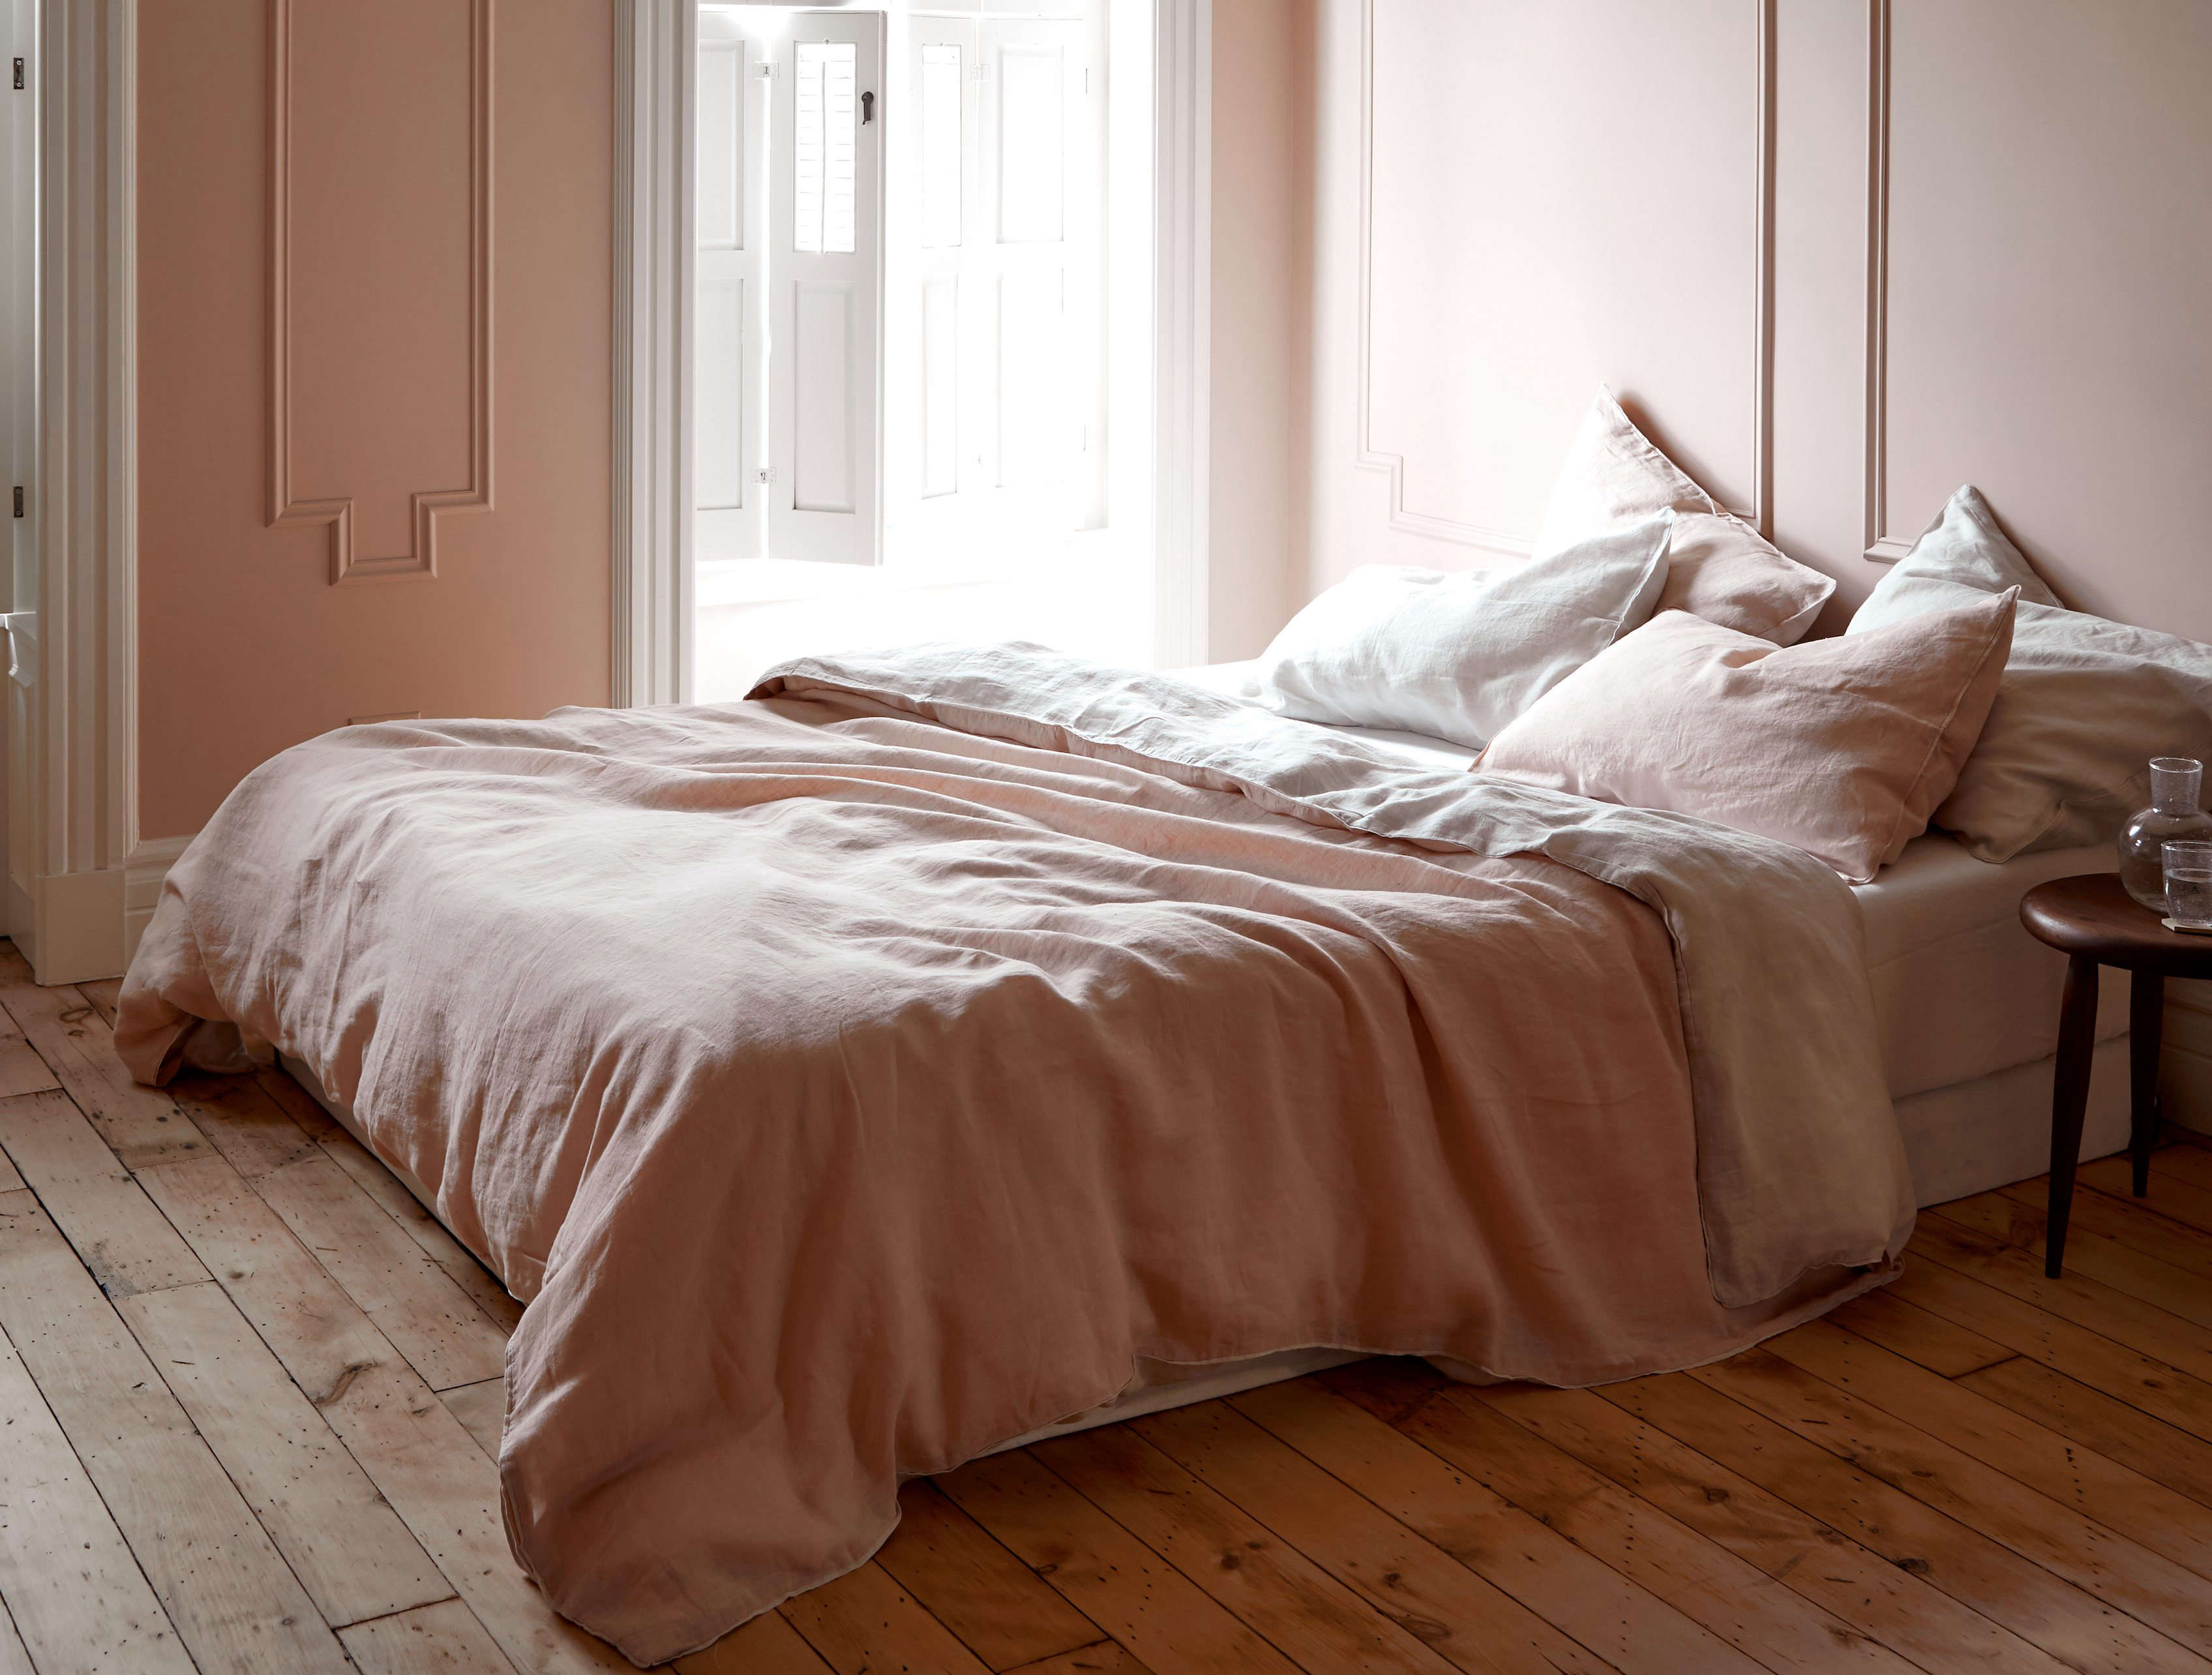 10 Things Nobody Tells You About Washing Your Bedding - The Organized Home